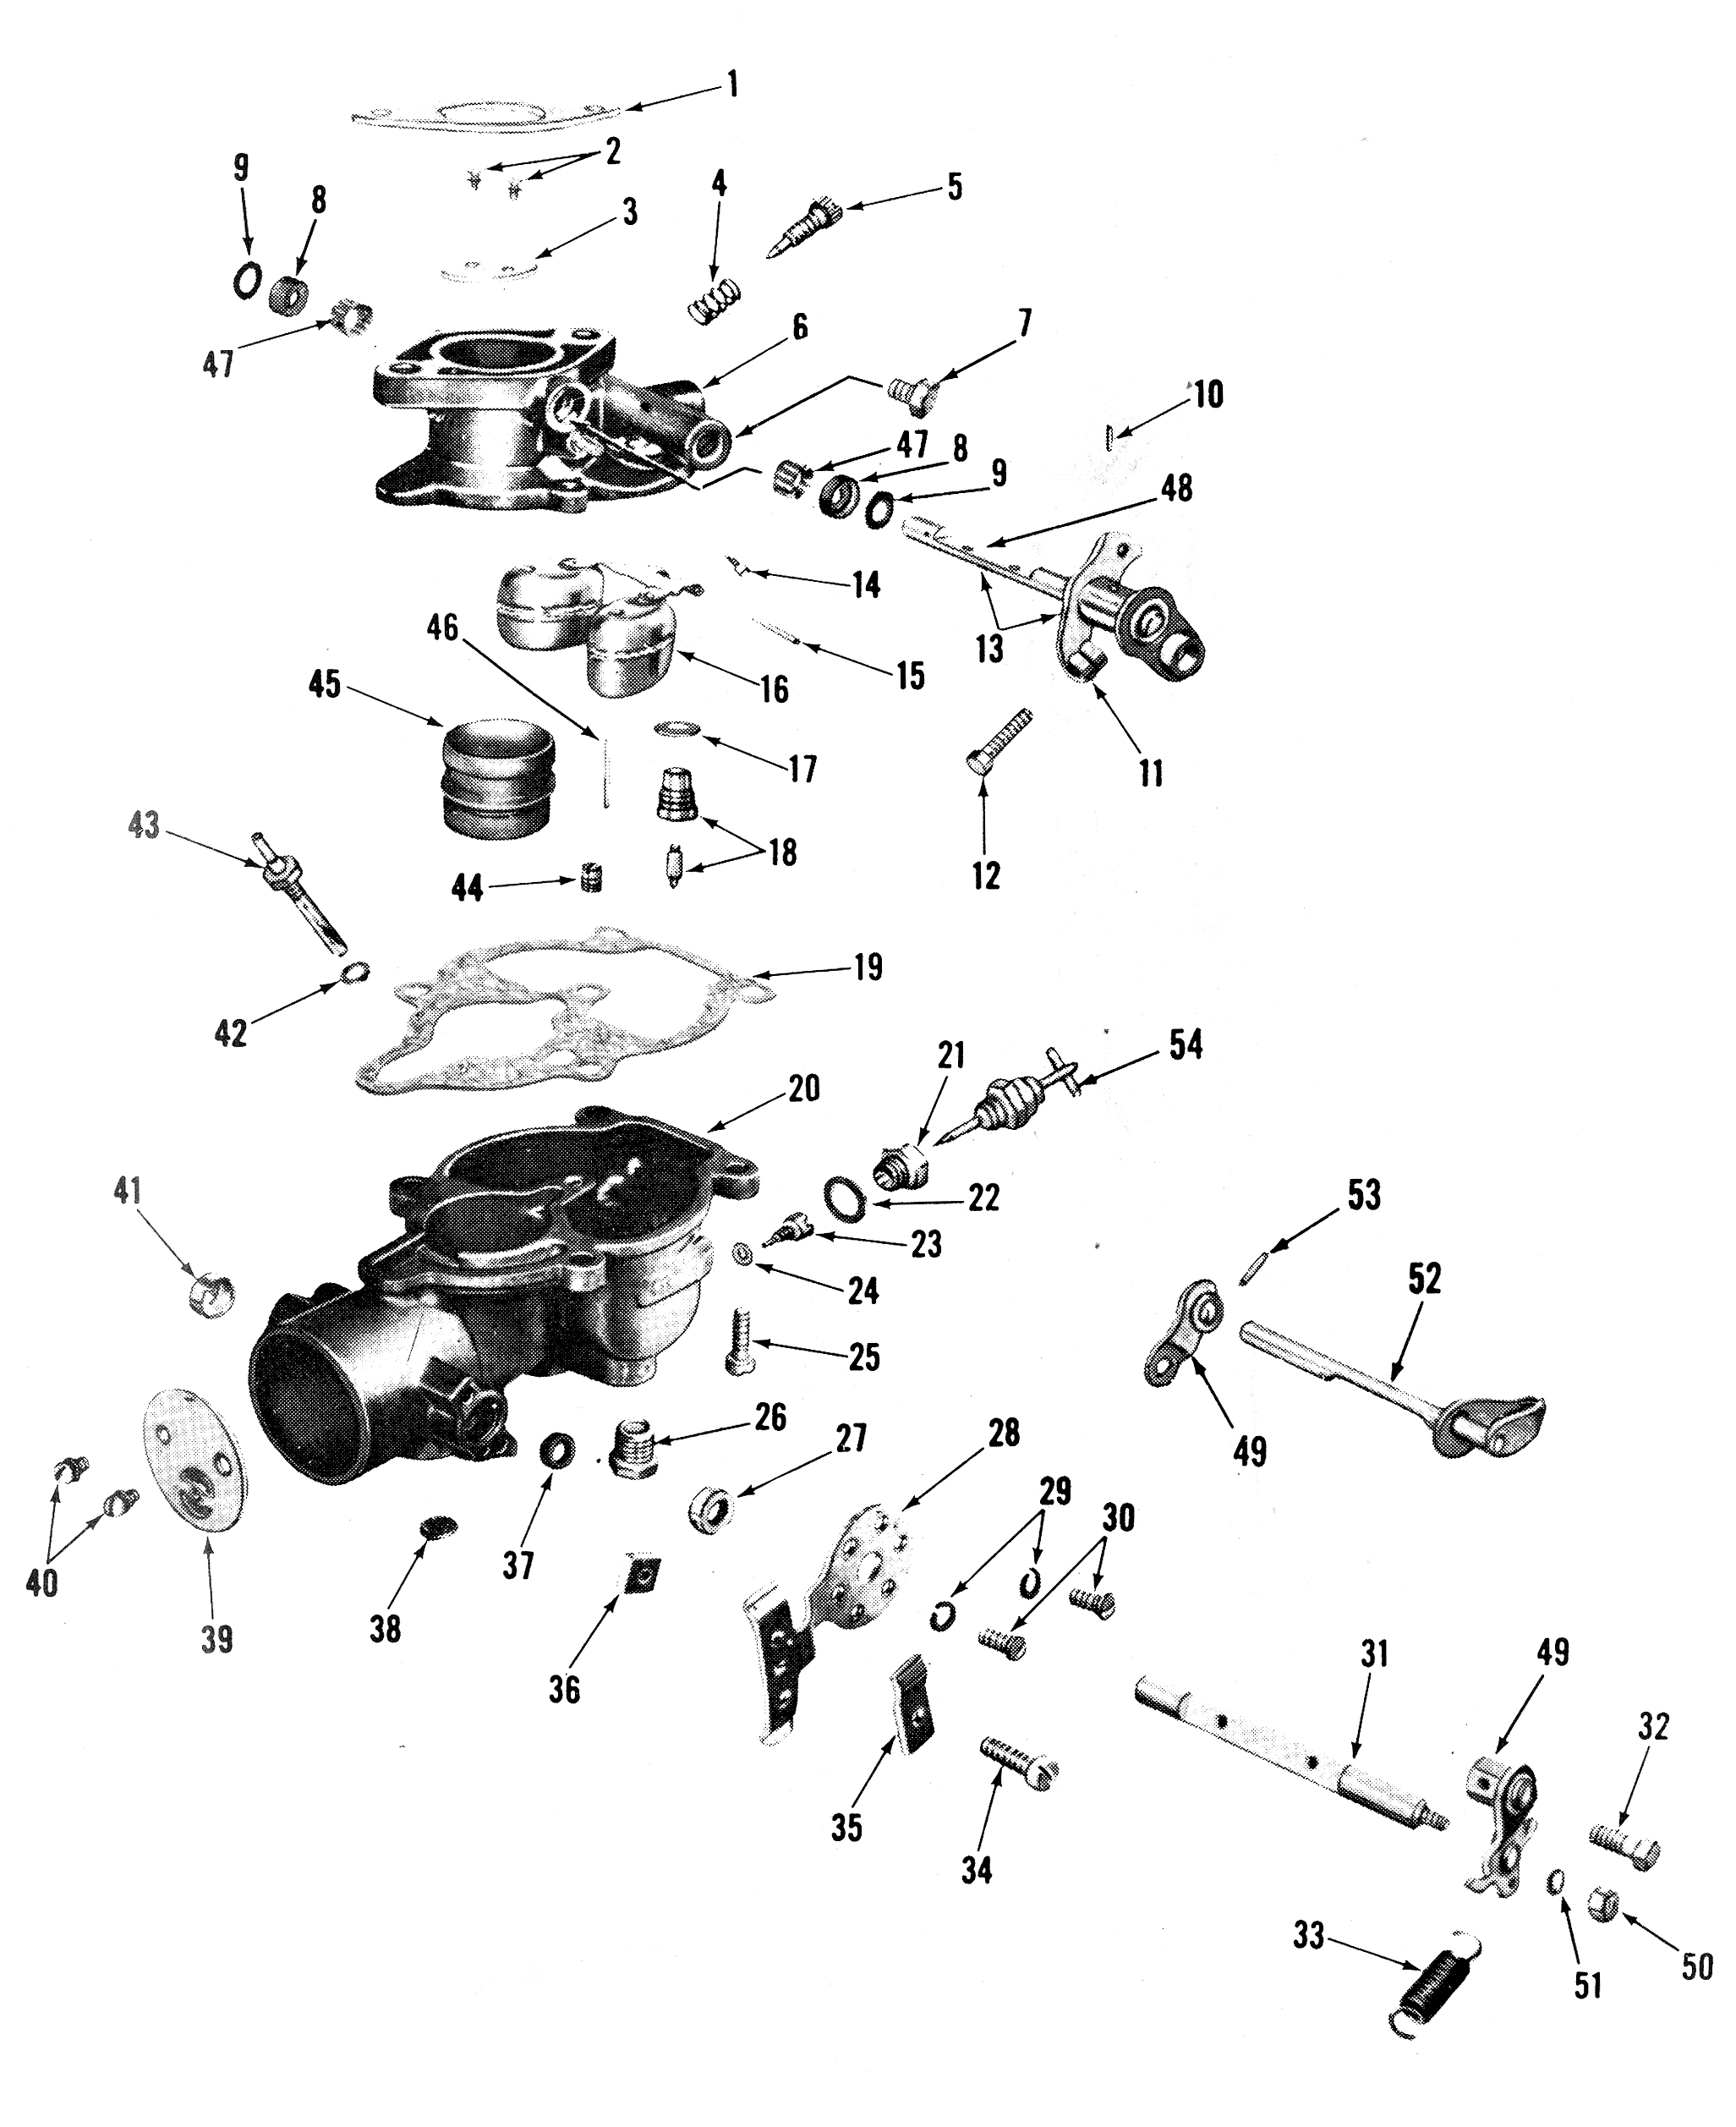 zenith updraft carburetor diagram zenith 12522 carburetor kit, float and manual honda cv carburetor diagram